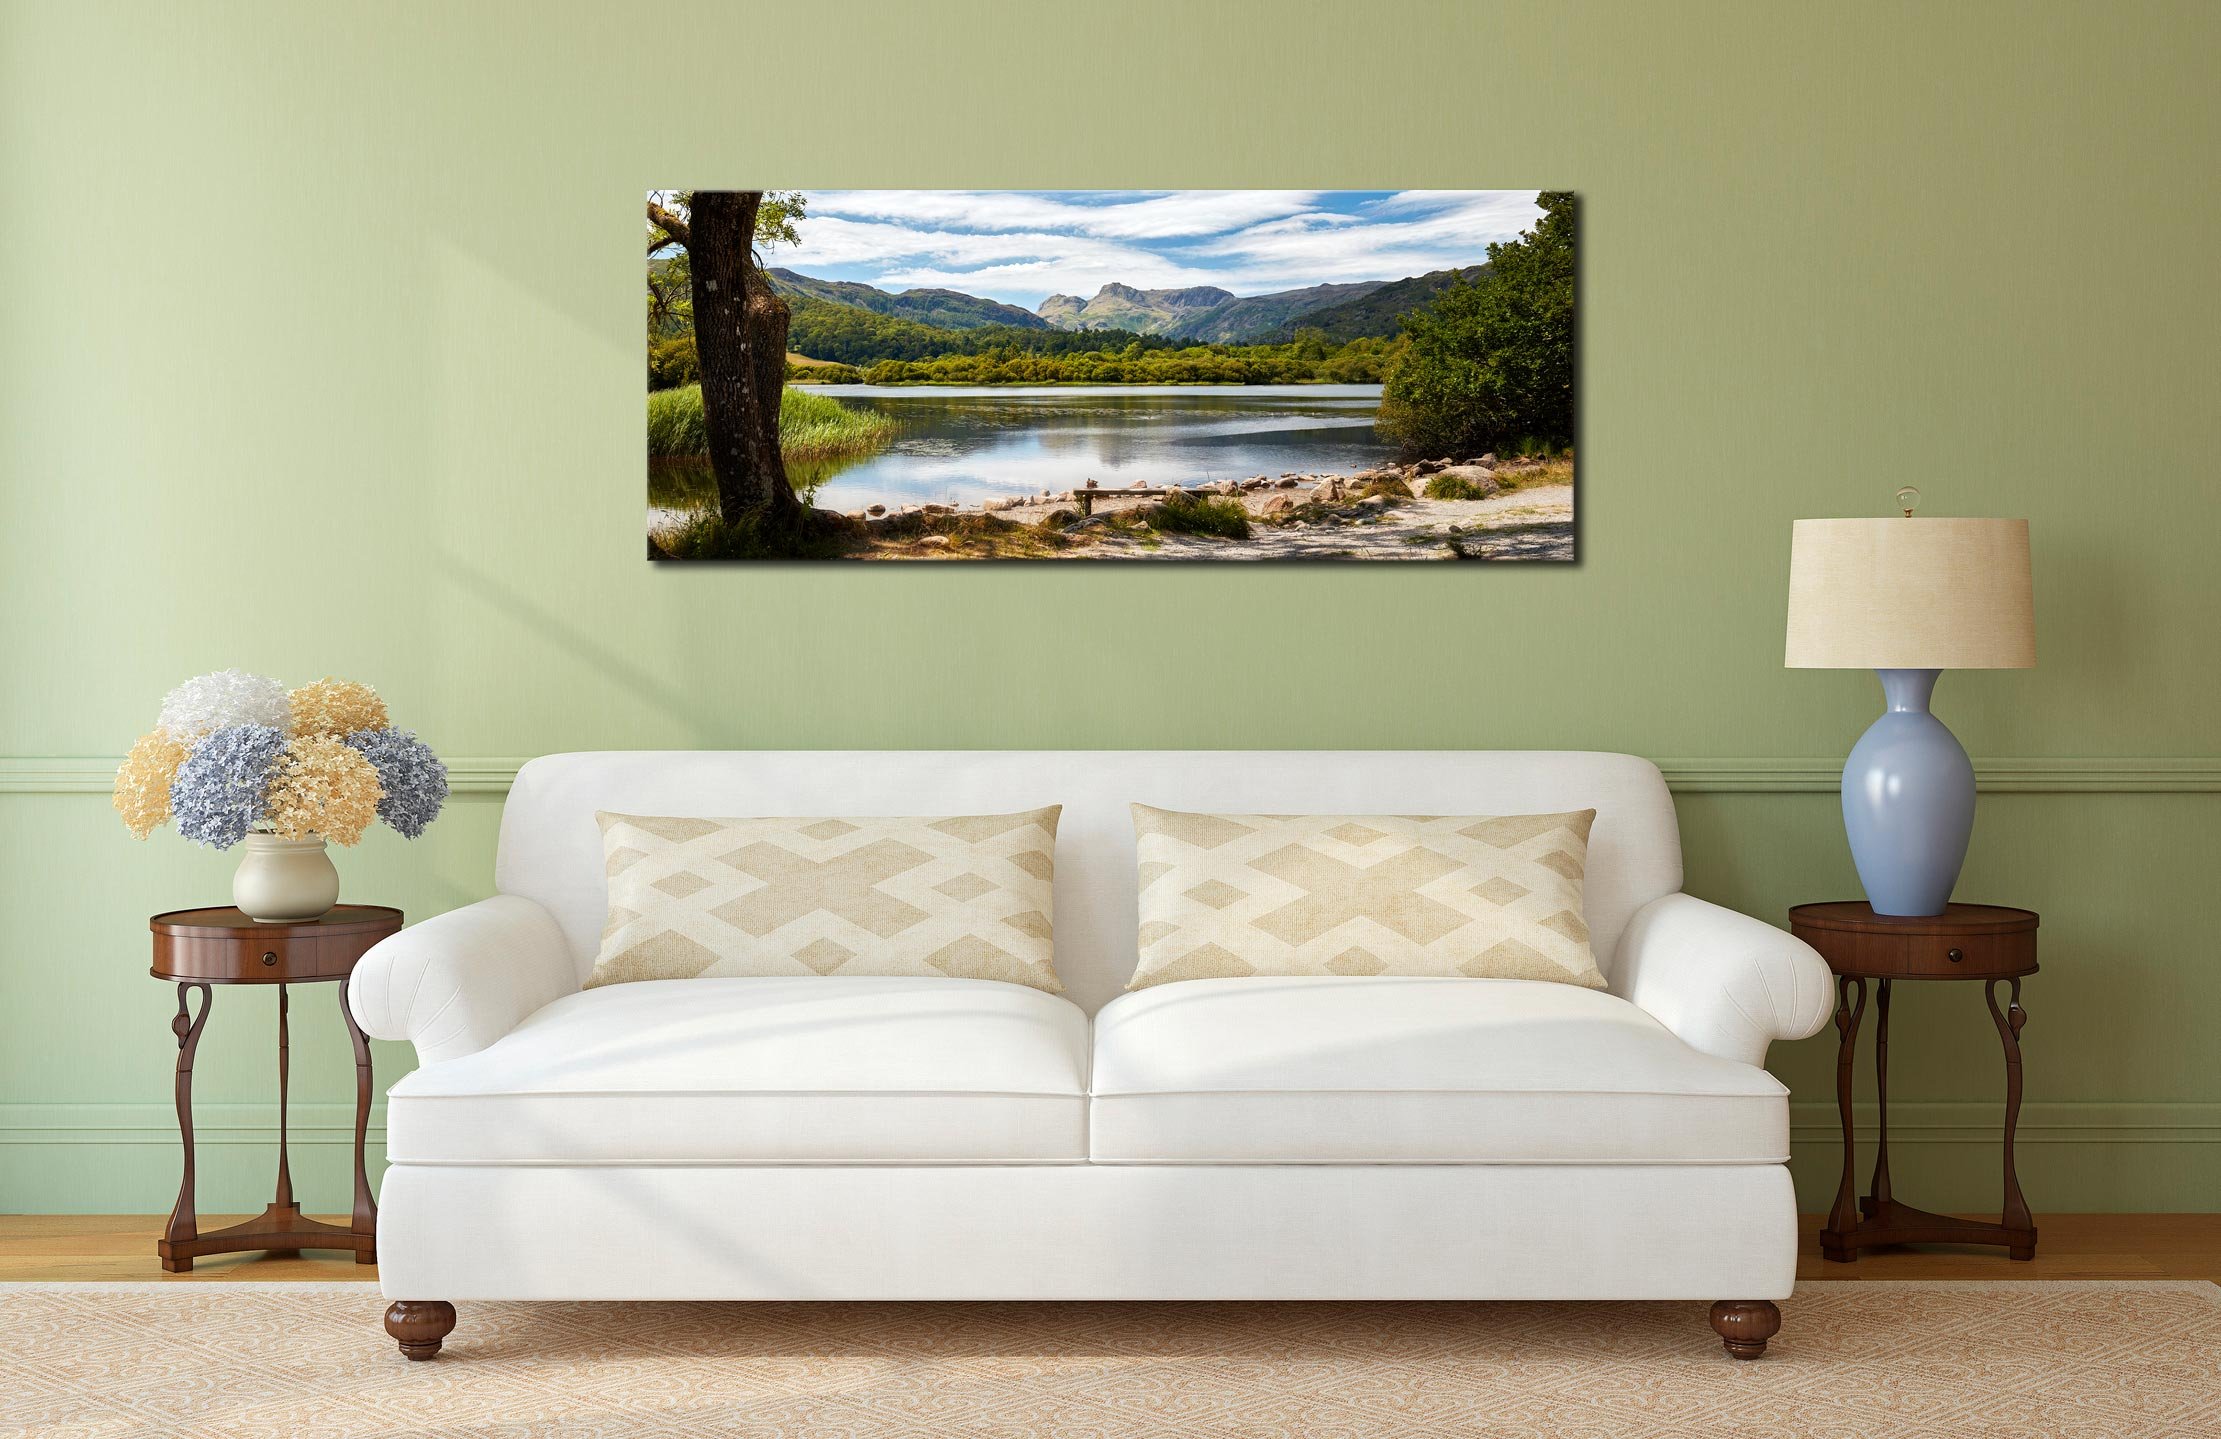 Elterwater Summer Afternoon - Print Aluminium Backing With Acrylic Glazing on Wall